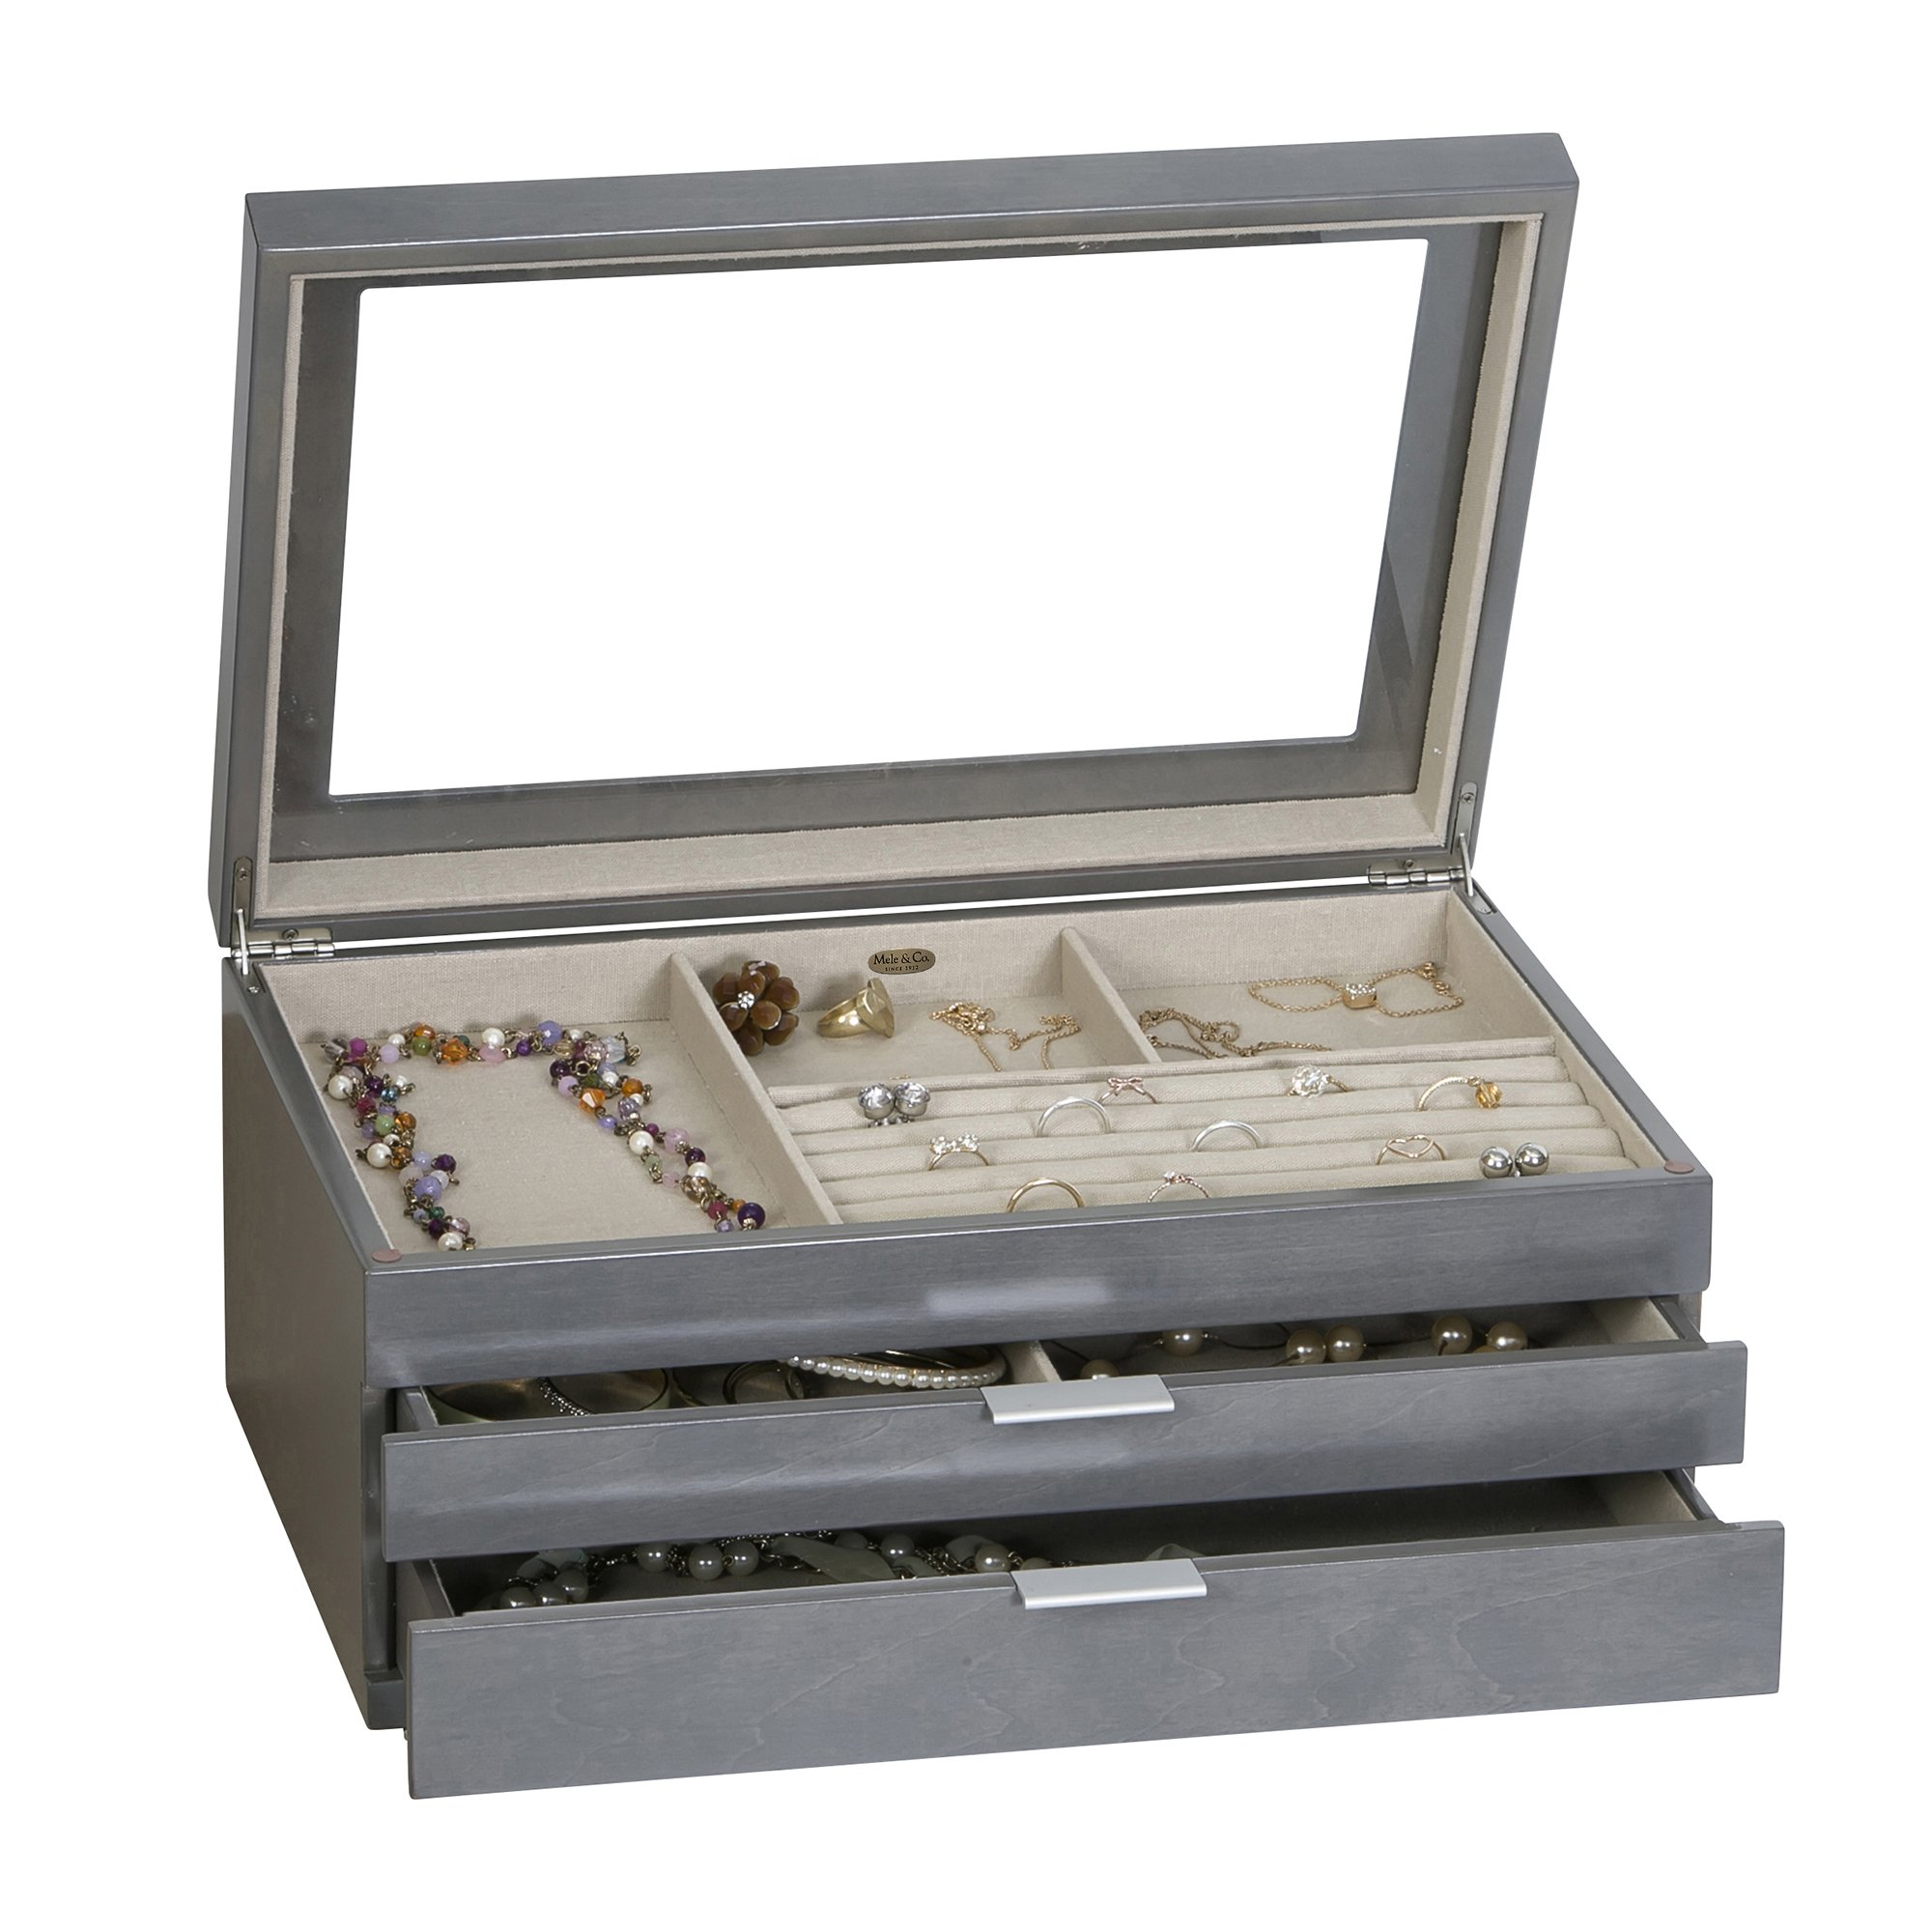 Mele & Co. Misty Glass Top Wooden Jewelry Box (Oceanside Grey Finish) by Mele & Co. (Image #2)